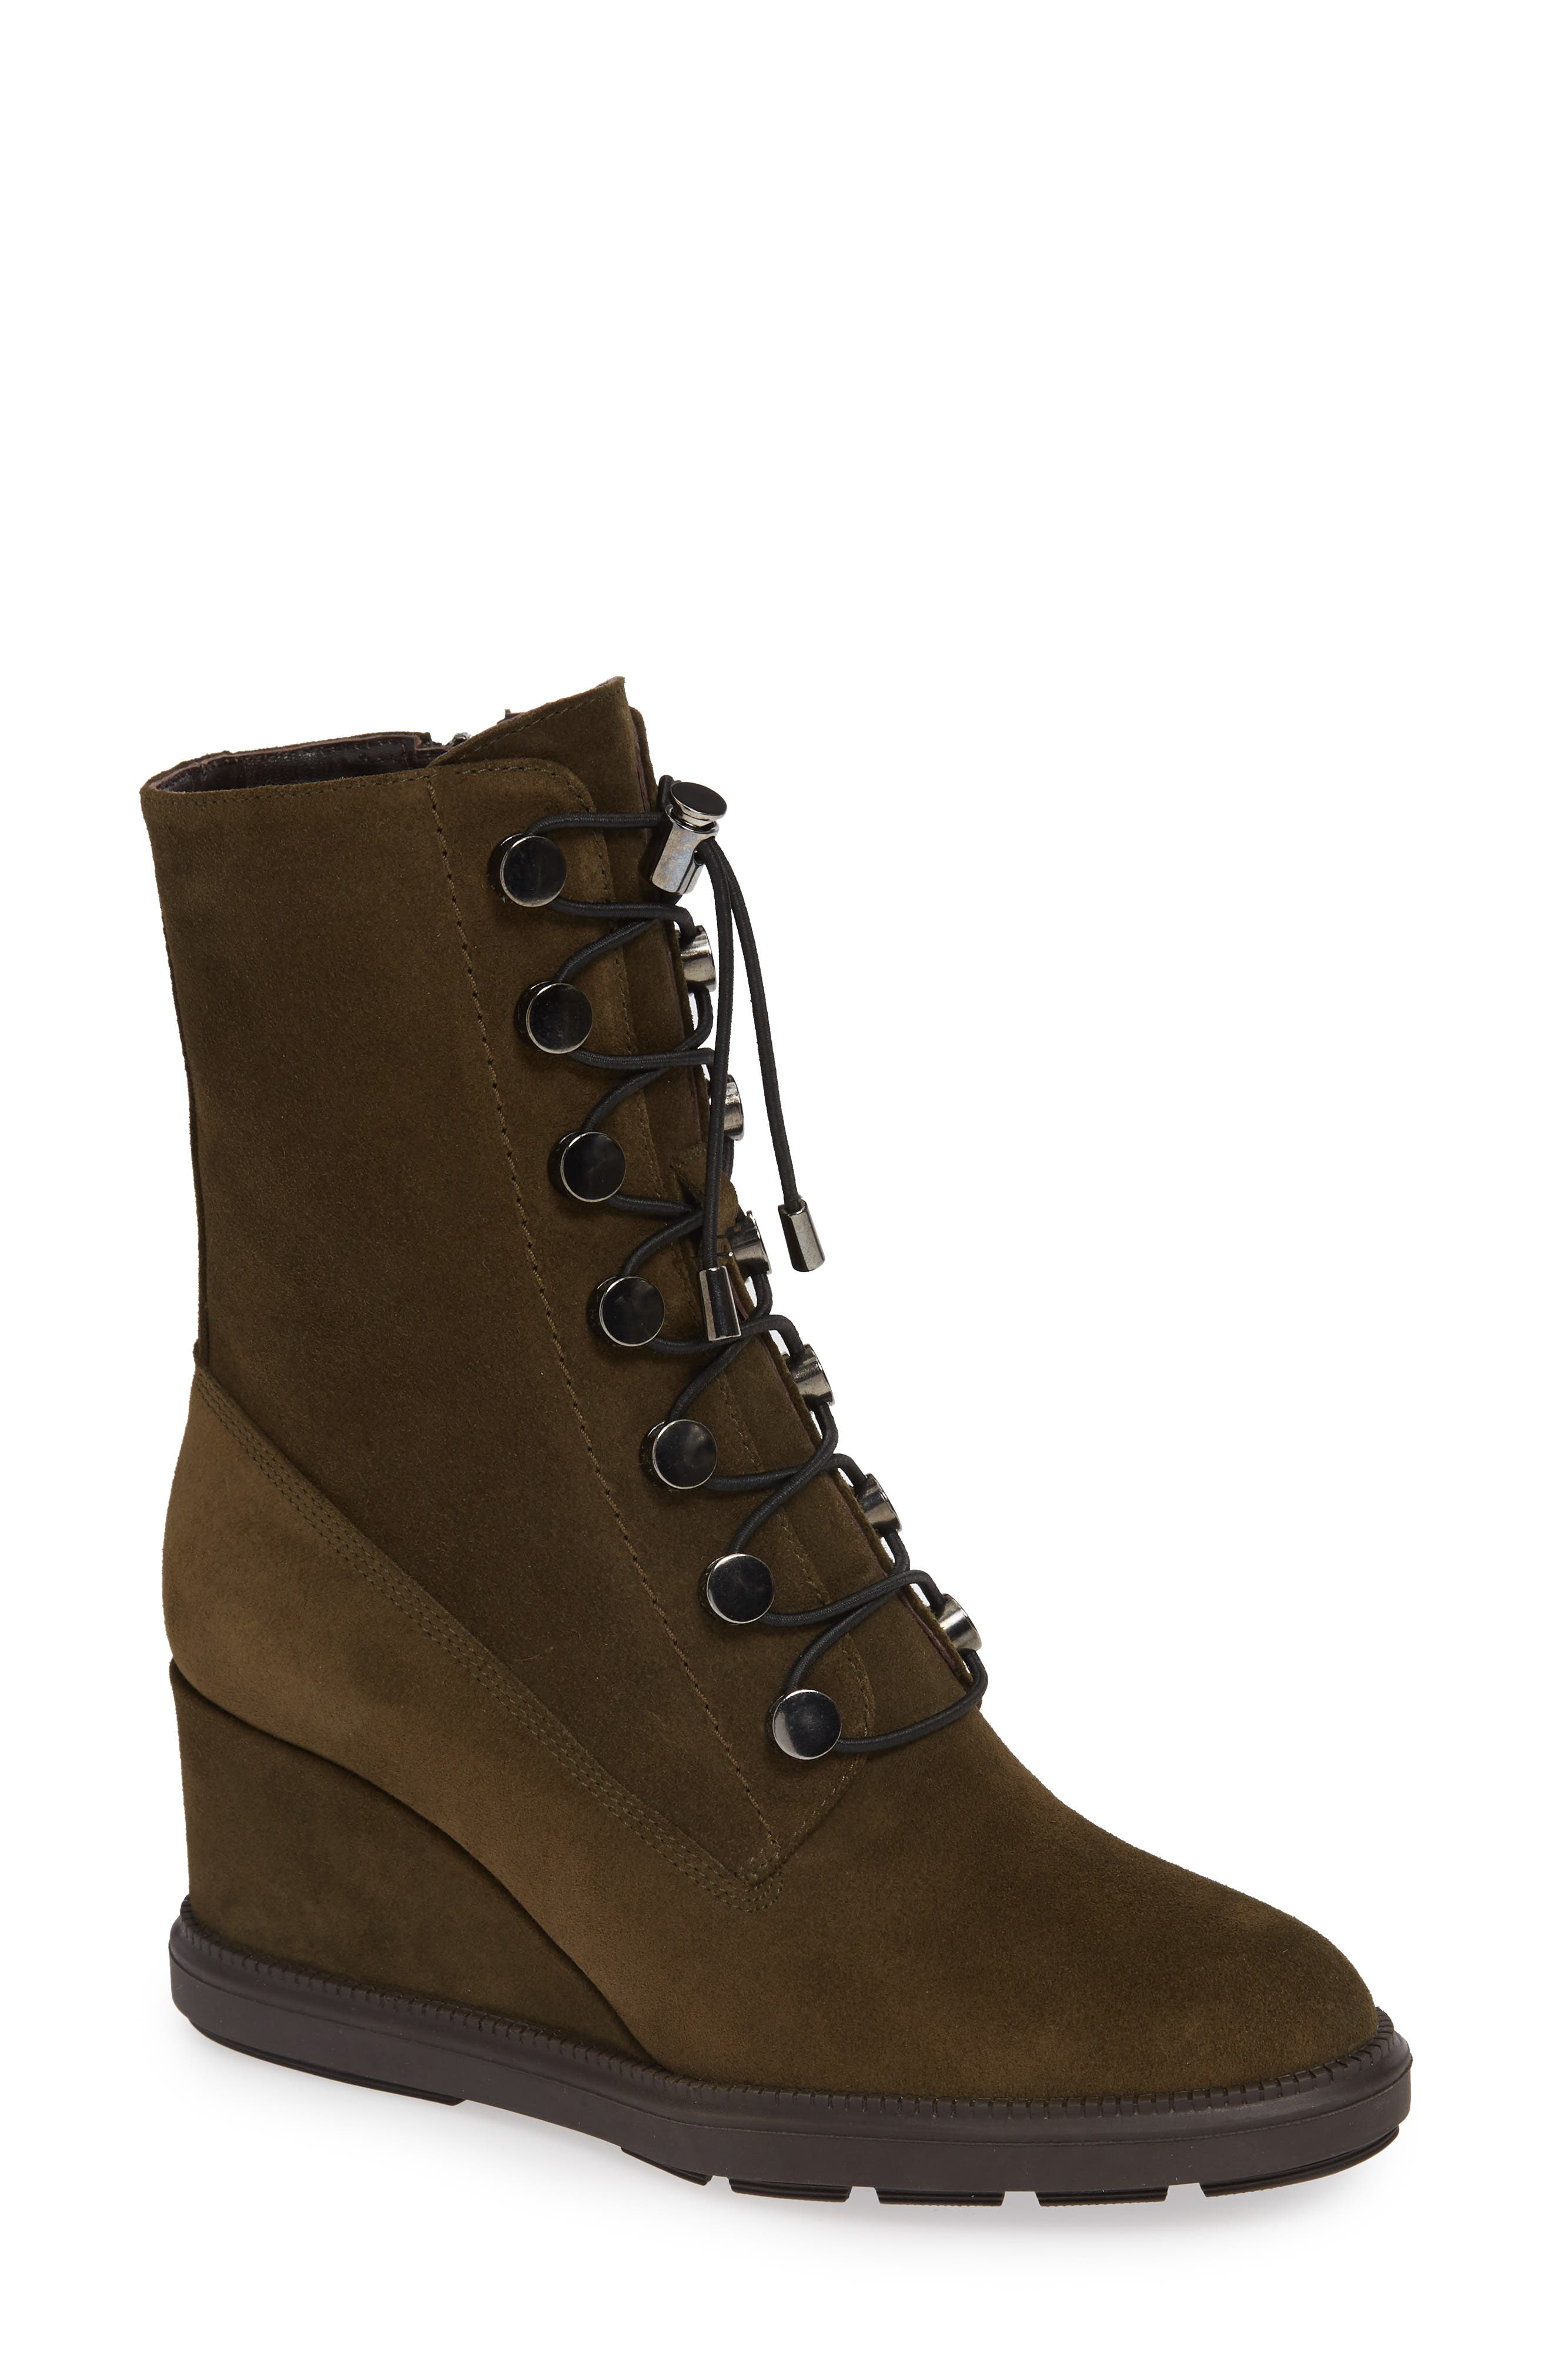 Campbell Wedge Boot,                             Main thumbnail 1, color,                             HERB SUEDE